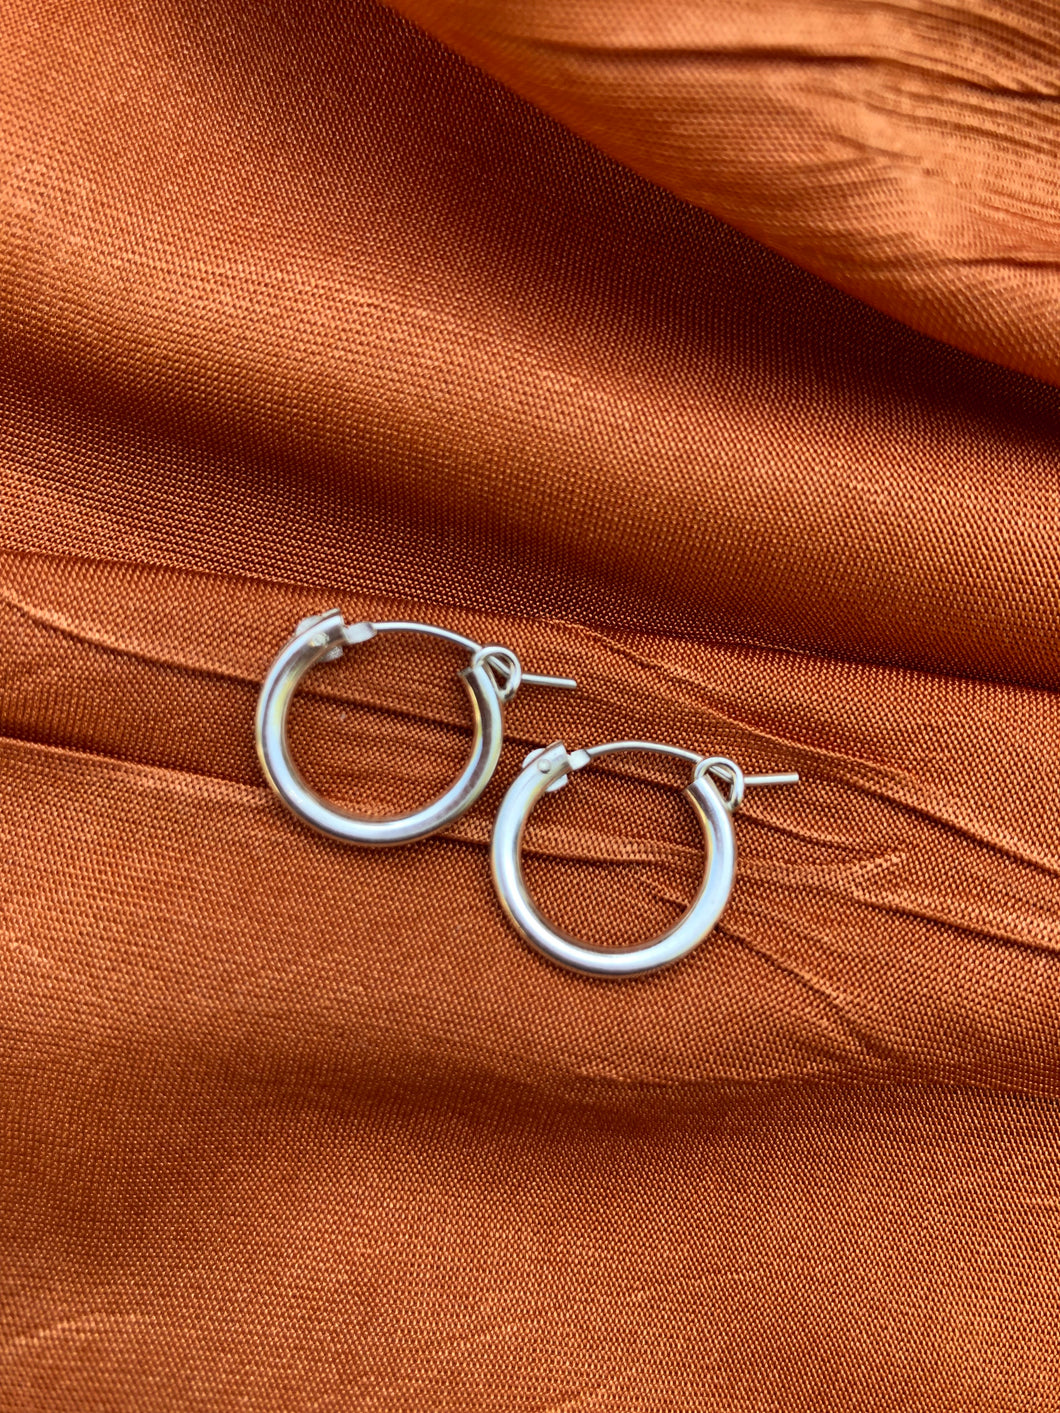 SMALL STERLING SILVER HOOPS